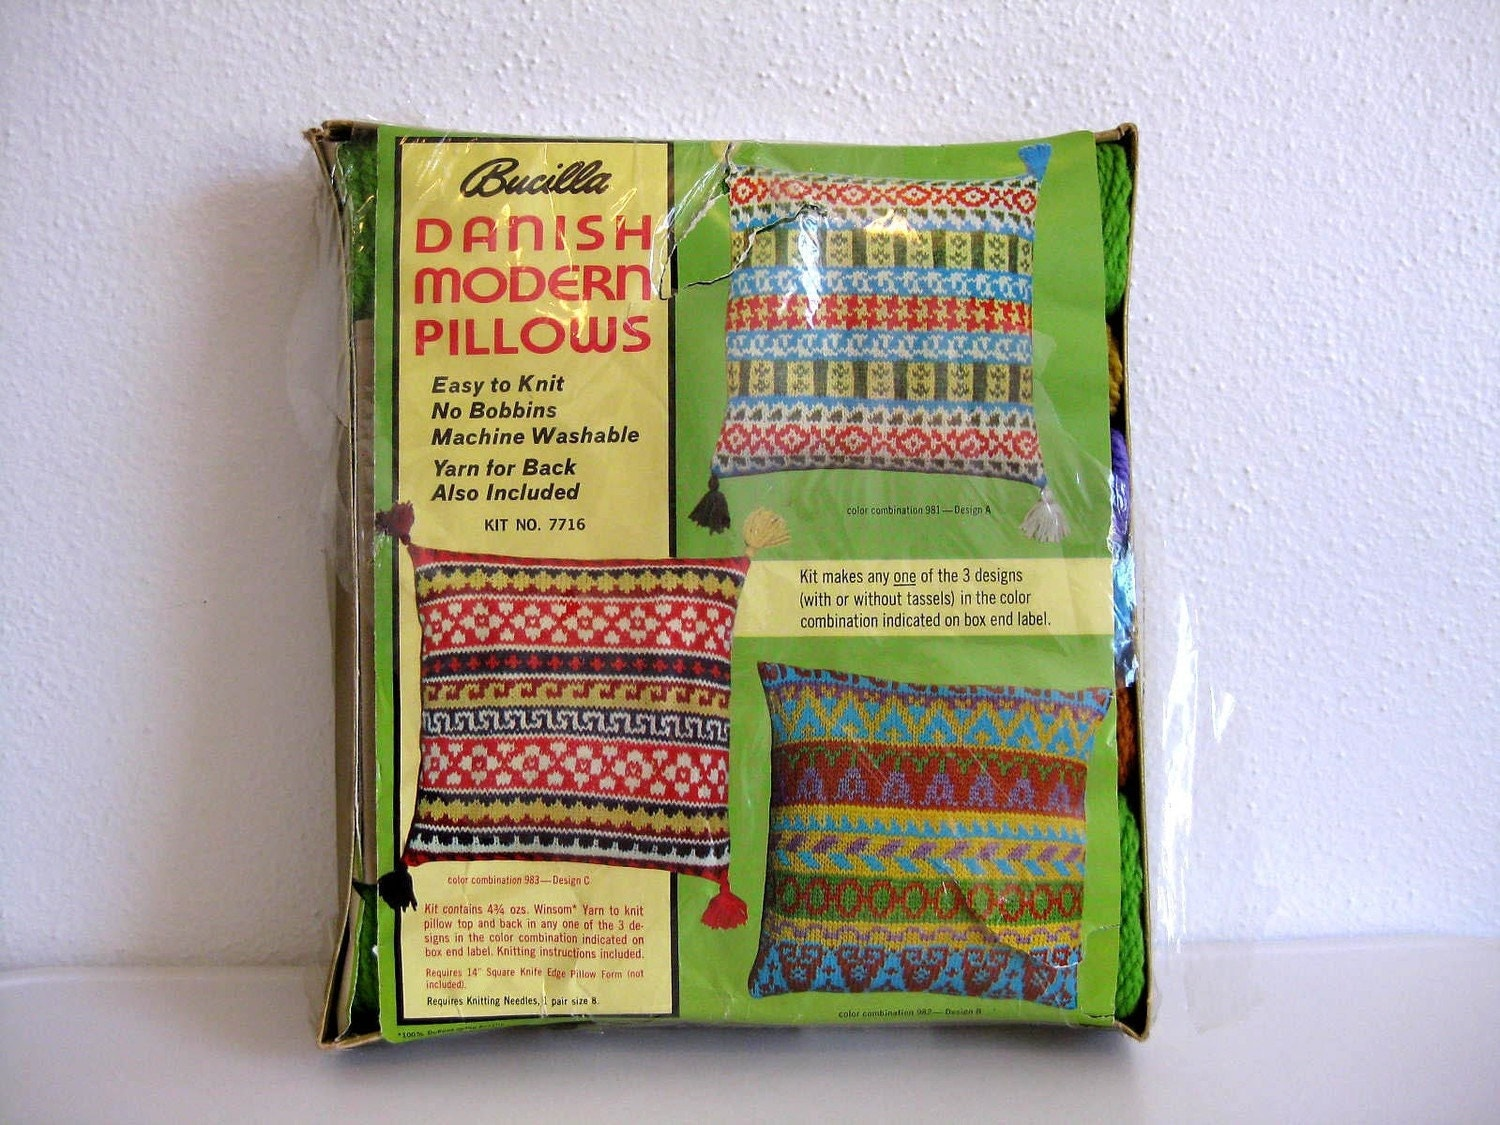 Modern Knitted Pillow : Danish Modern Knitting Pillow Kit by Buscilla by TheNeighborsPool